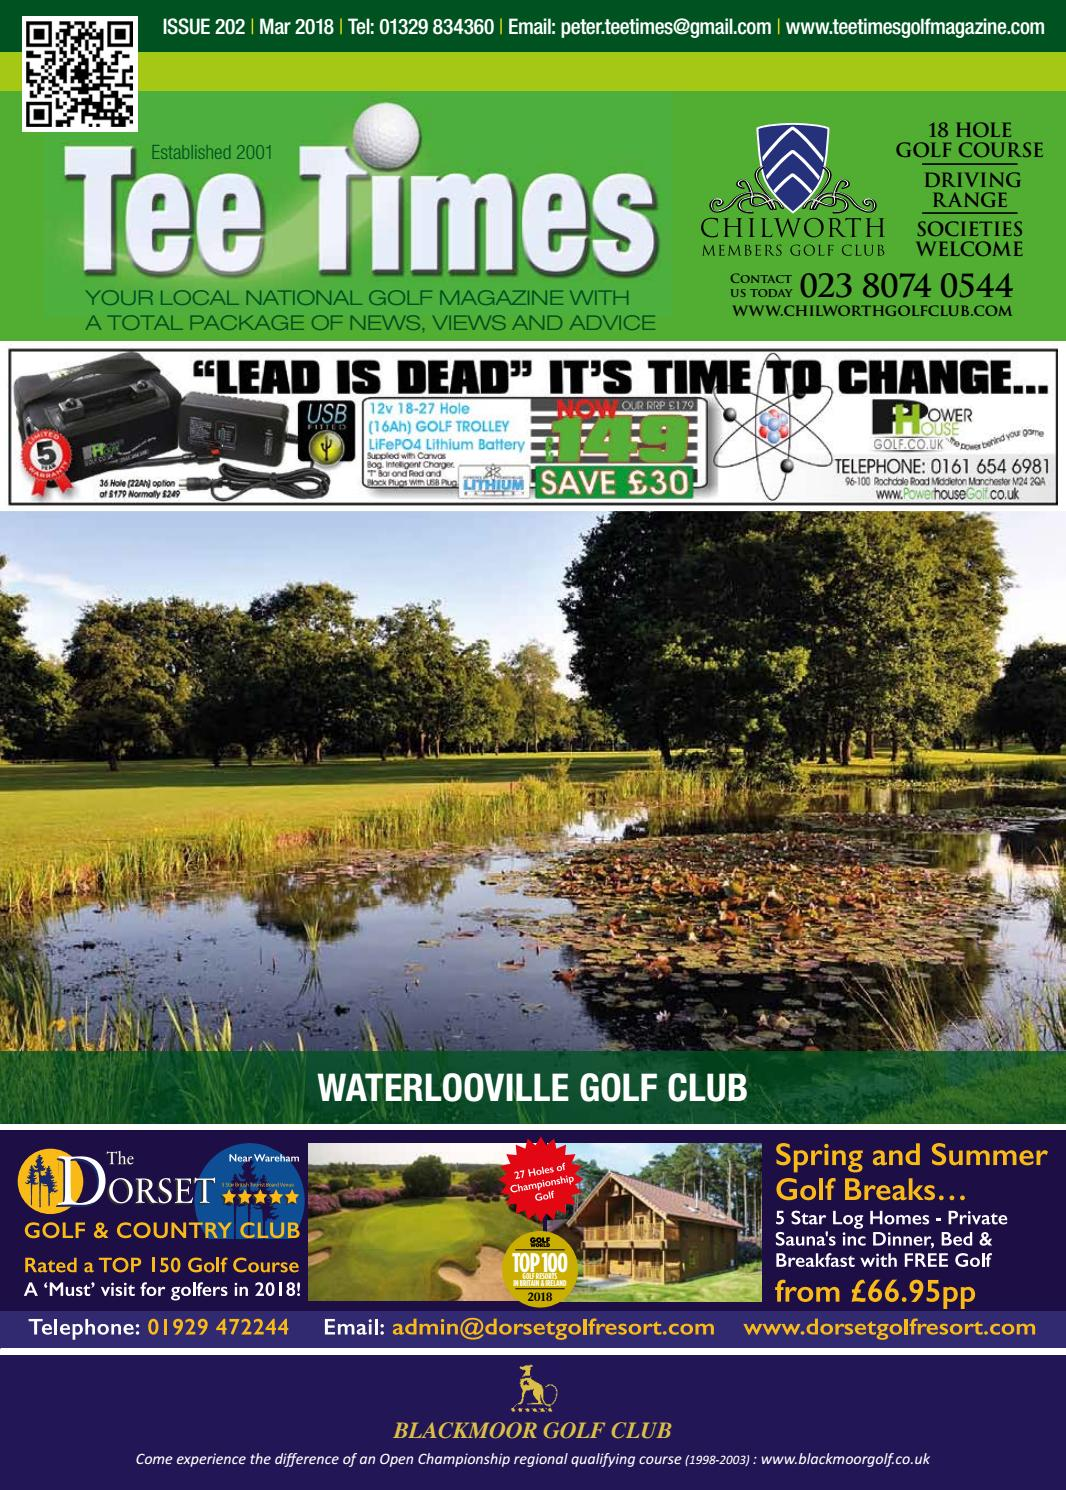 Tee Times Golf Magazine, March 2018 by Tee Times Golf